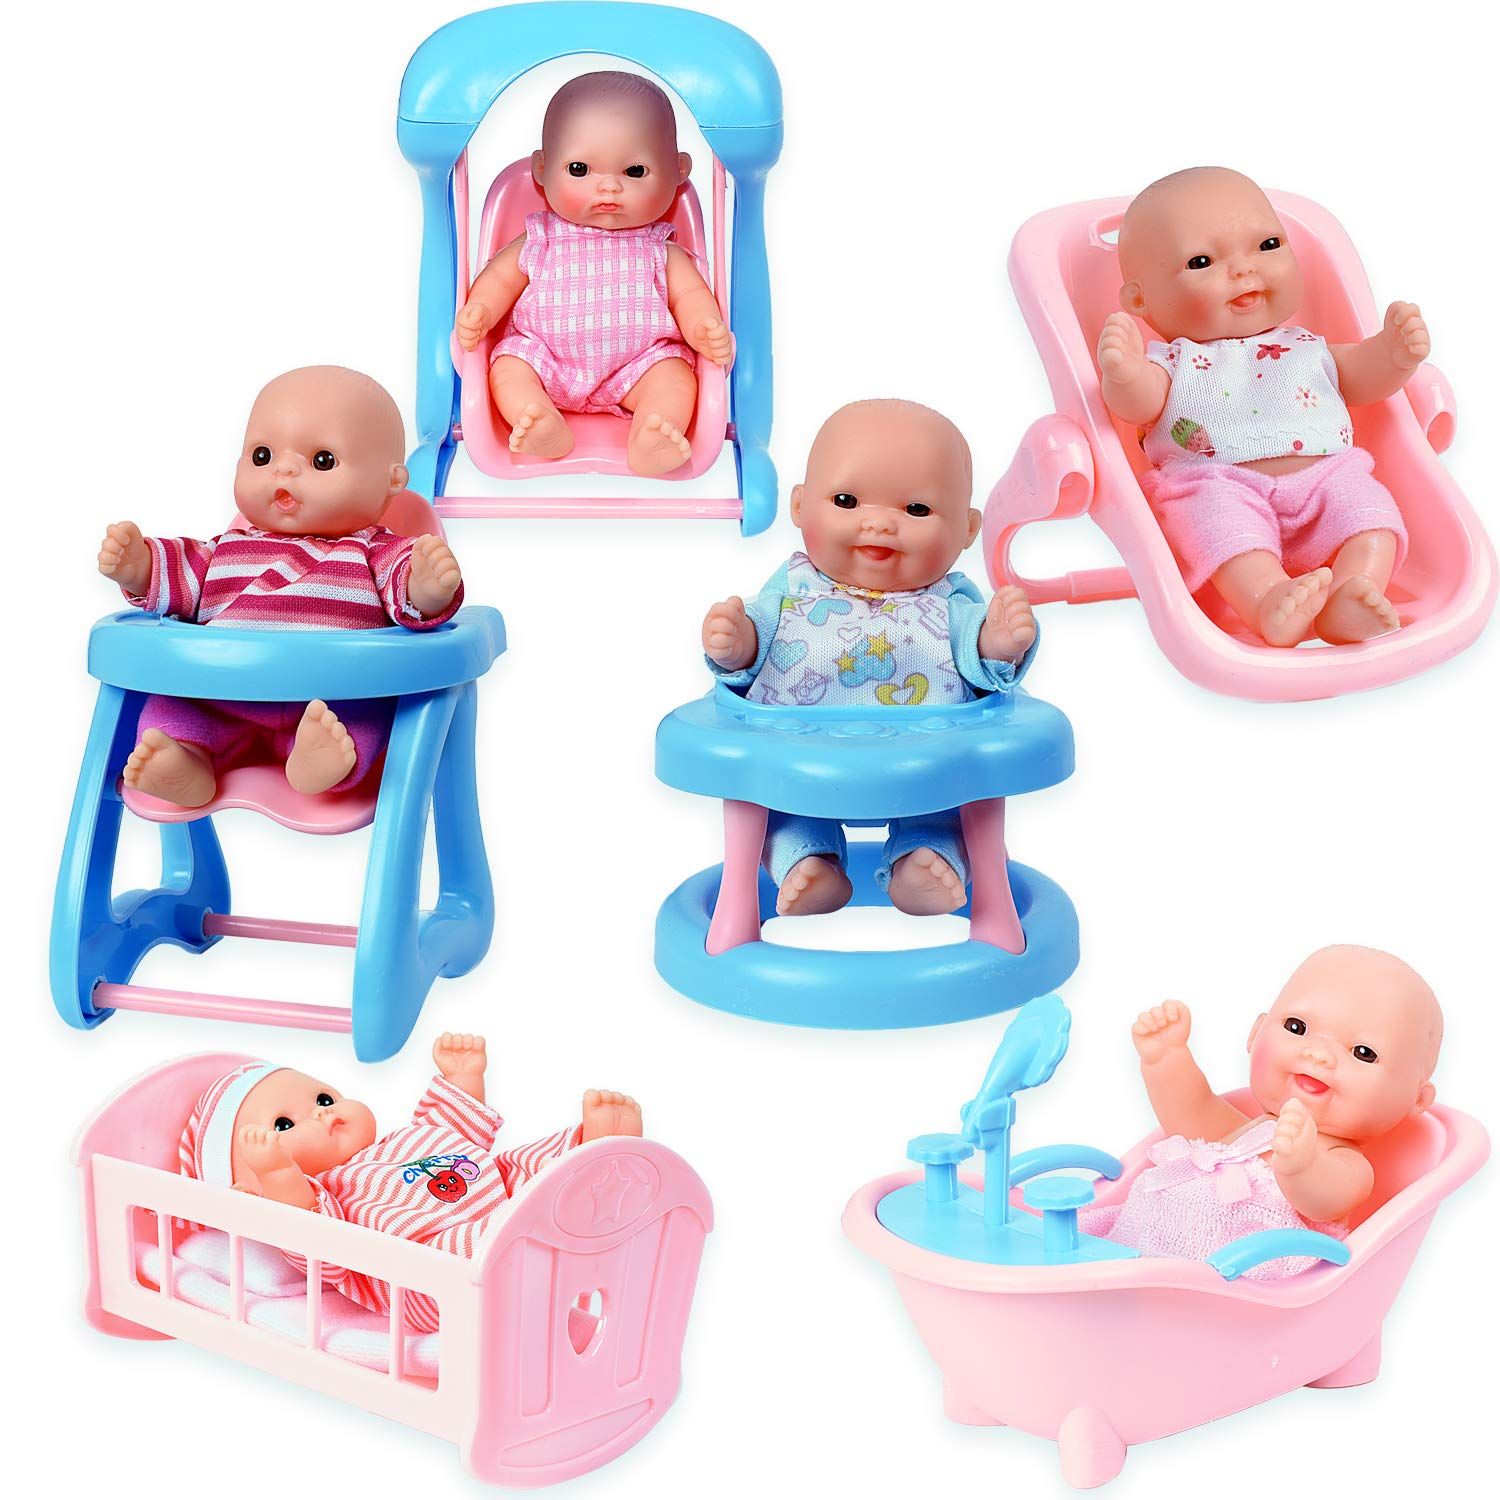 Infant seat WolVol Set of 6 Mini Dolls for Girls with Cradle Swing Walker Bathtub High Chair